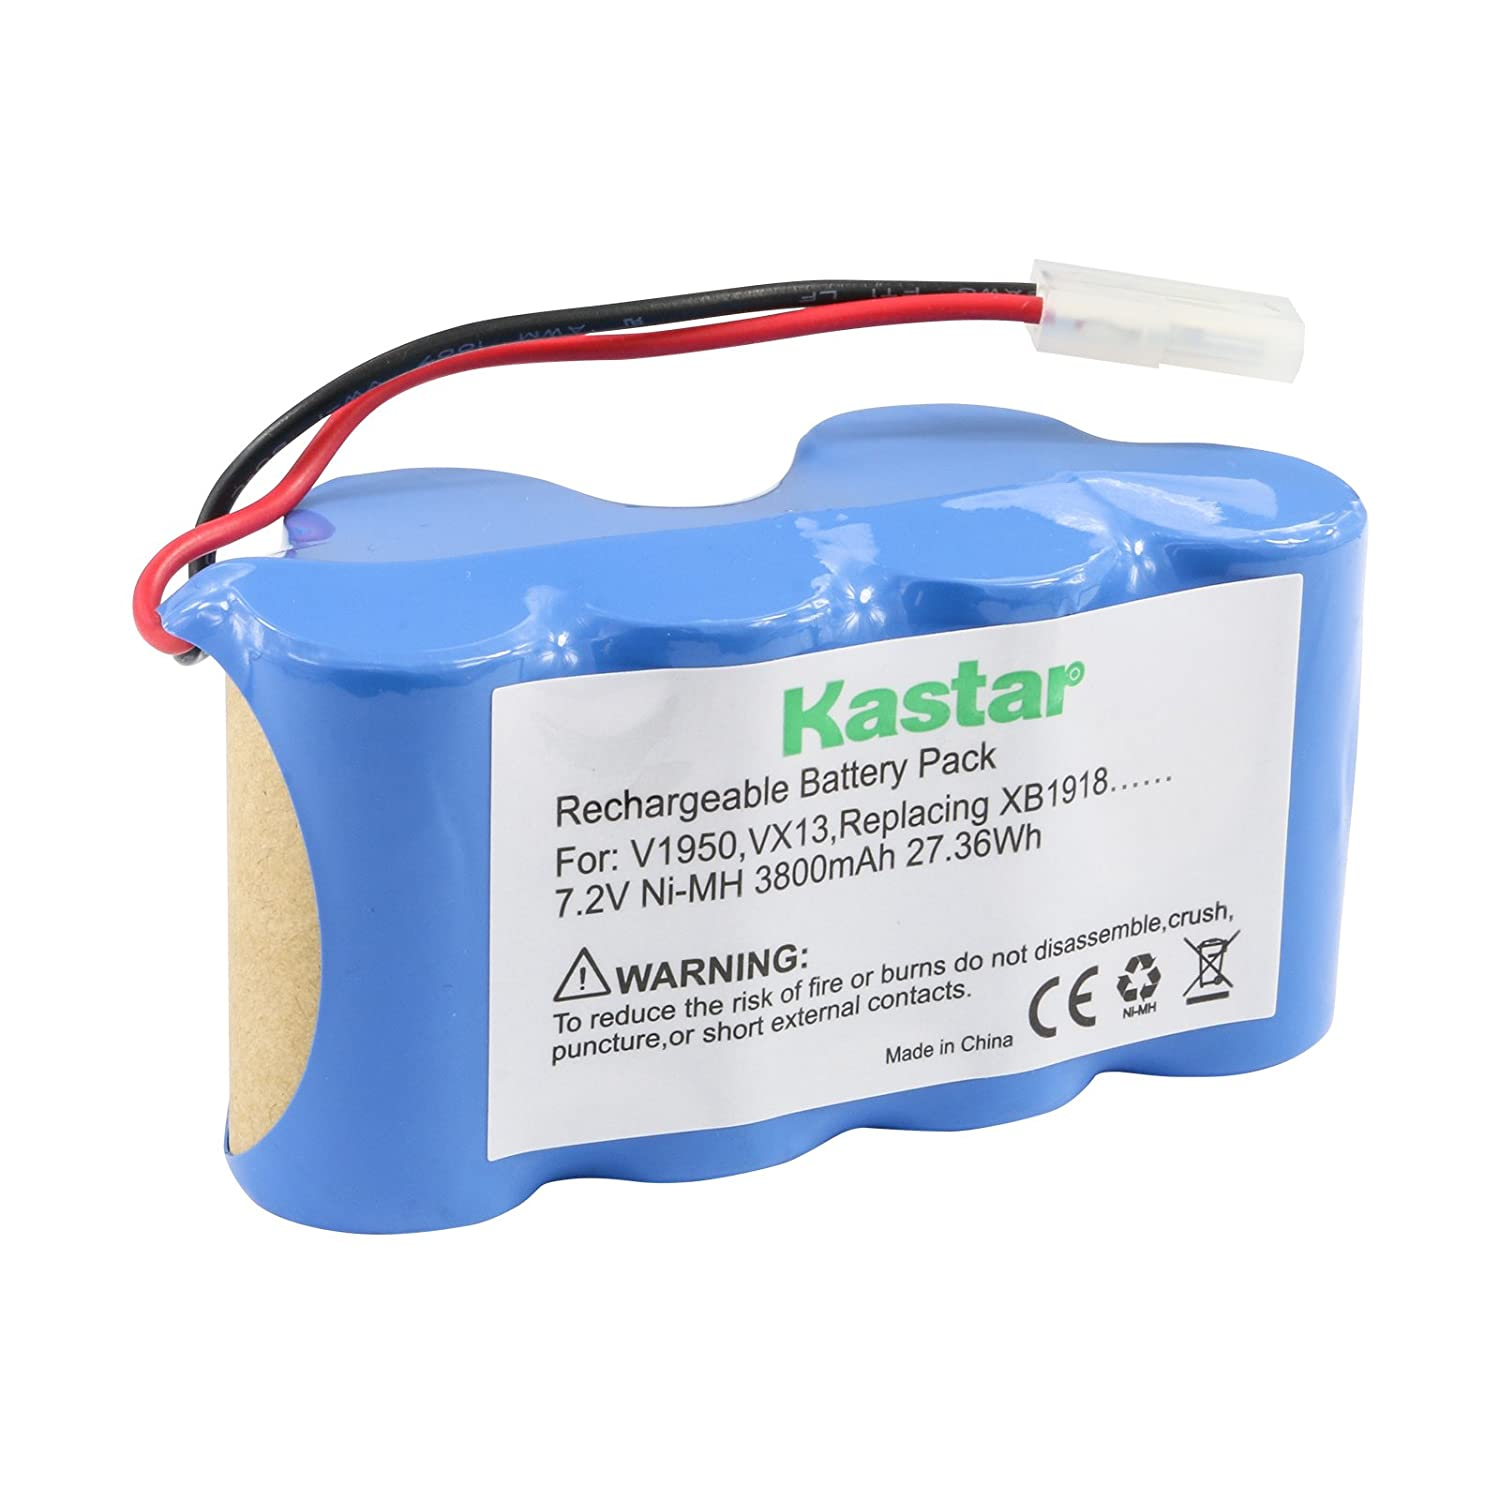 Kastar Battery Pack 7.2V 3800mAh, Replacement for Euro-Pro Shark Vacuum V1950 VX3 V1917 Shark XB1918 Cordless Sweeper